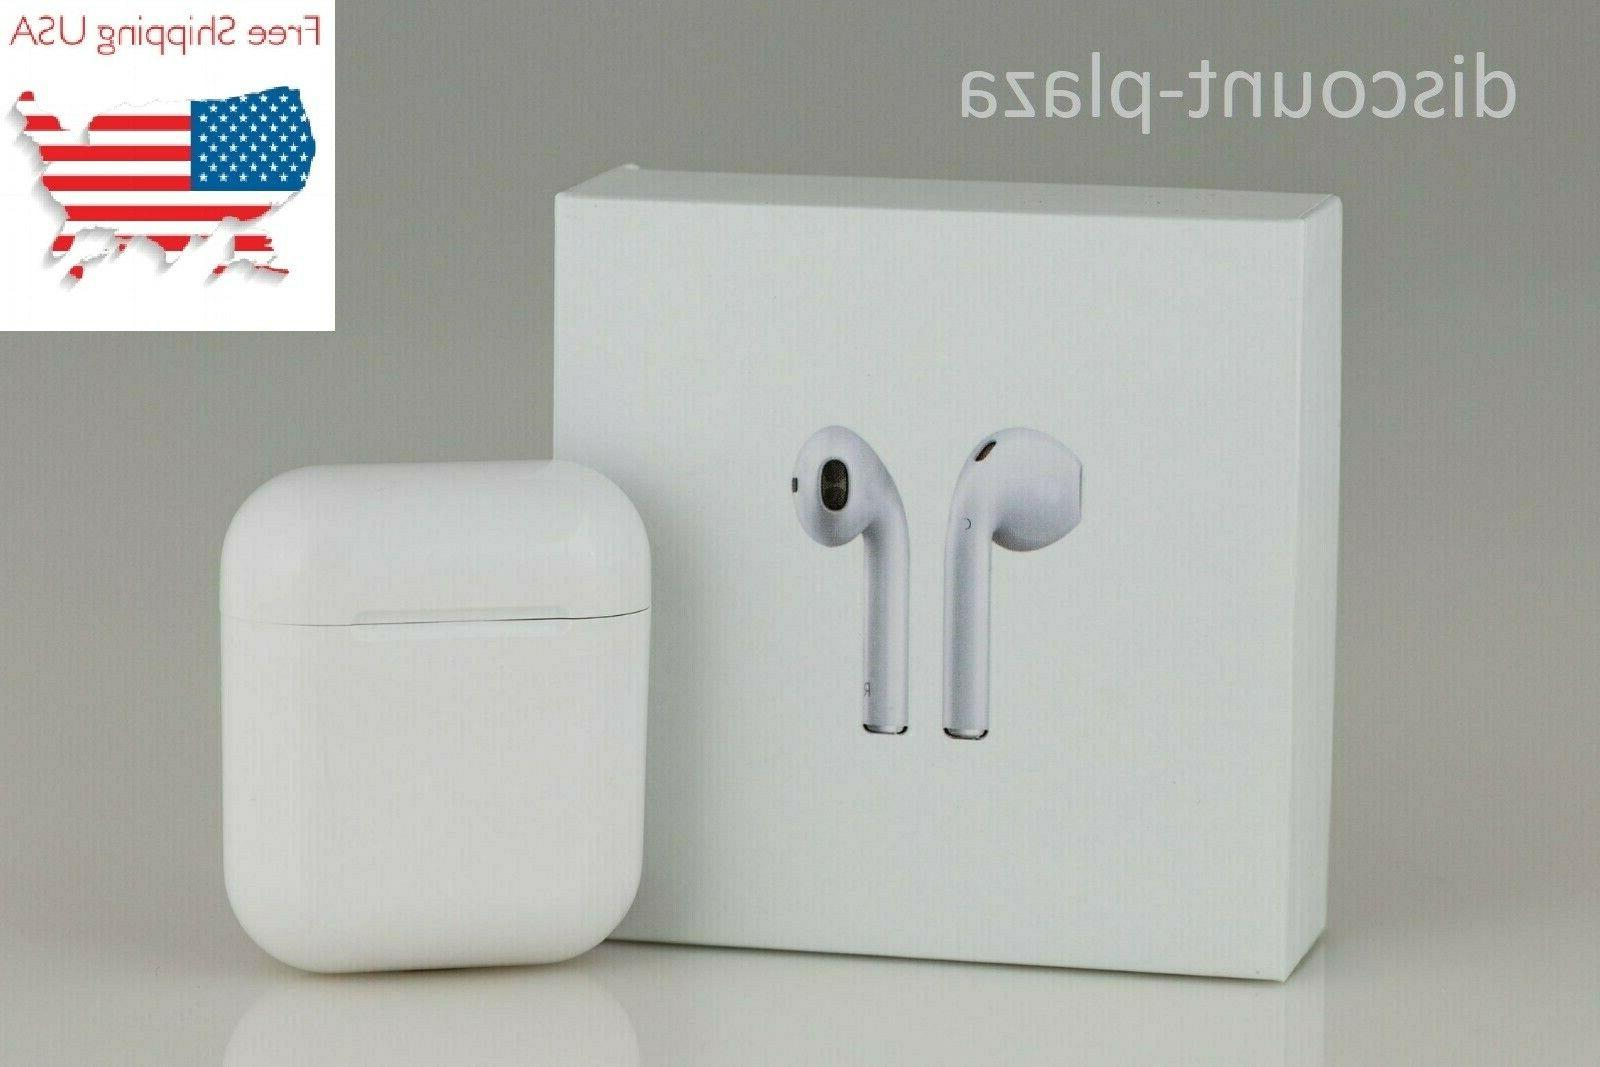 sale new pro grade airpods style wireless